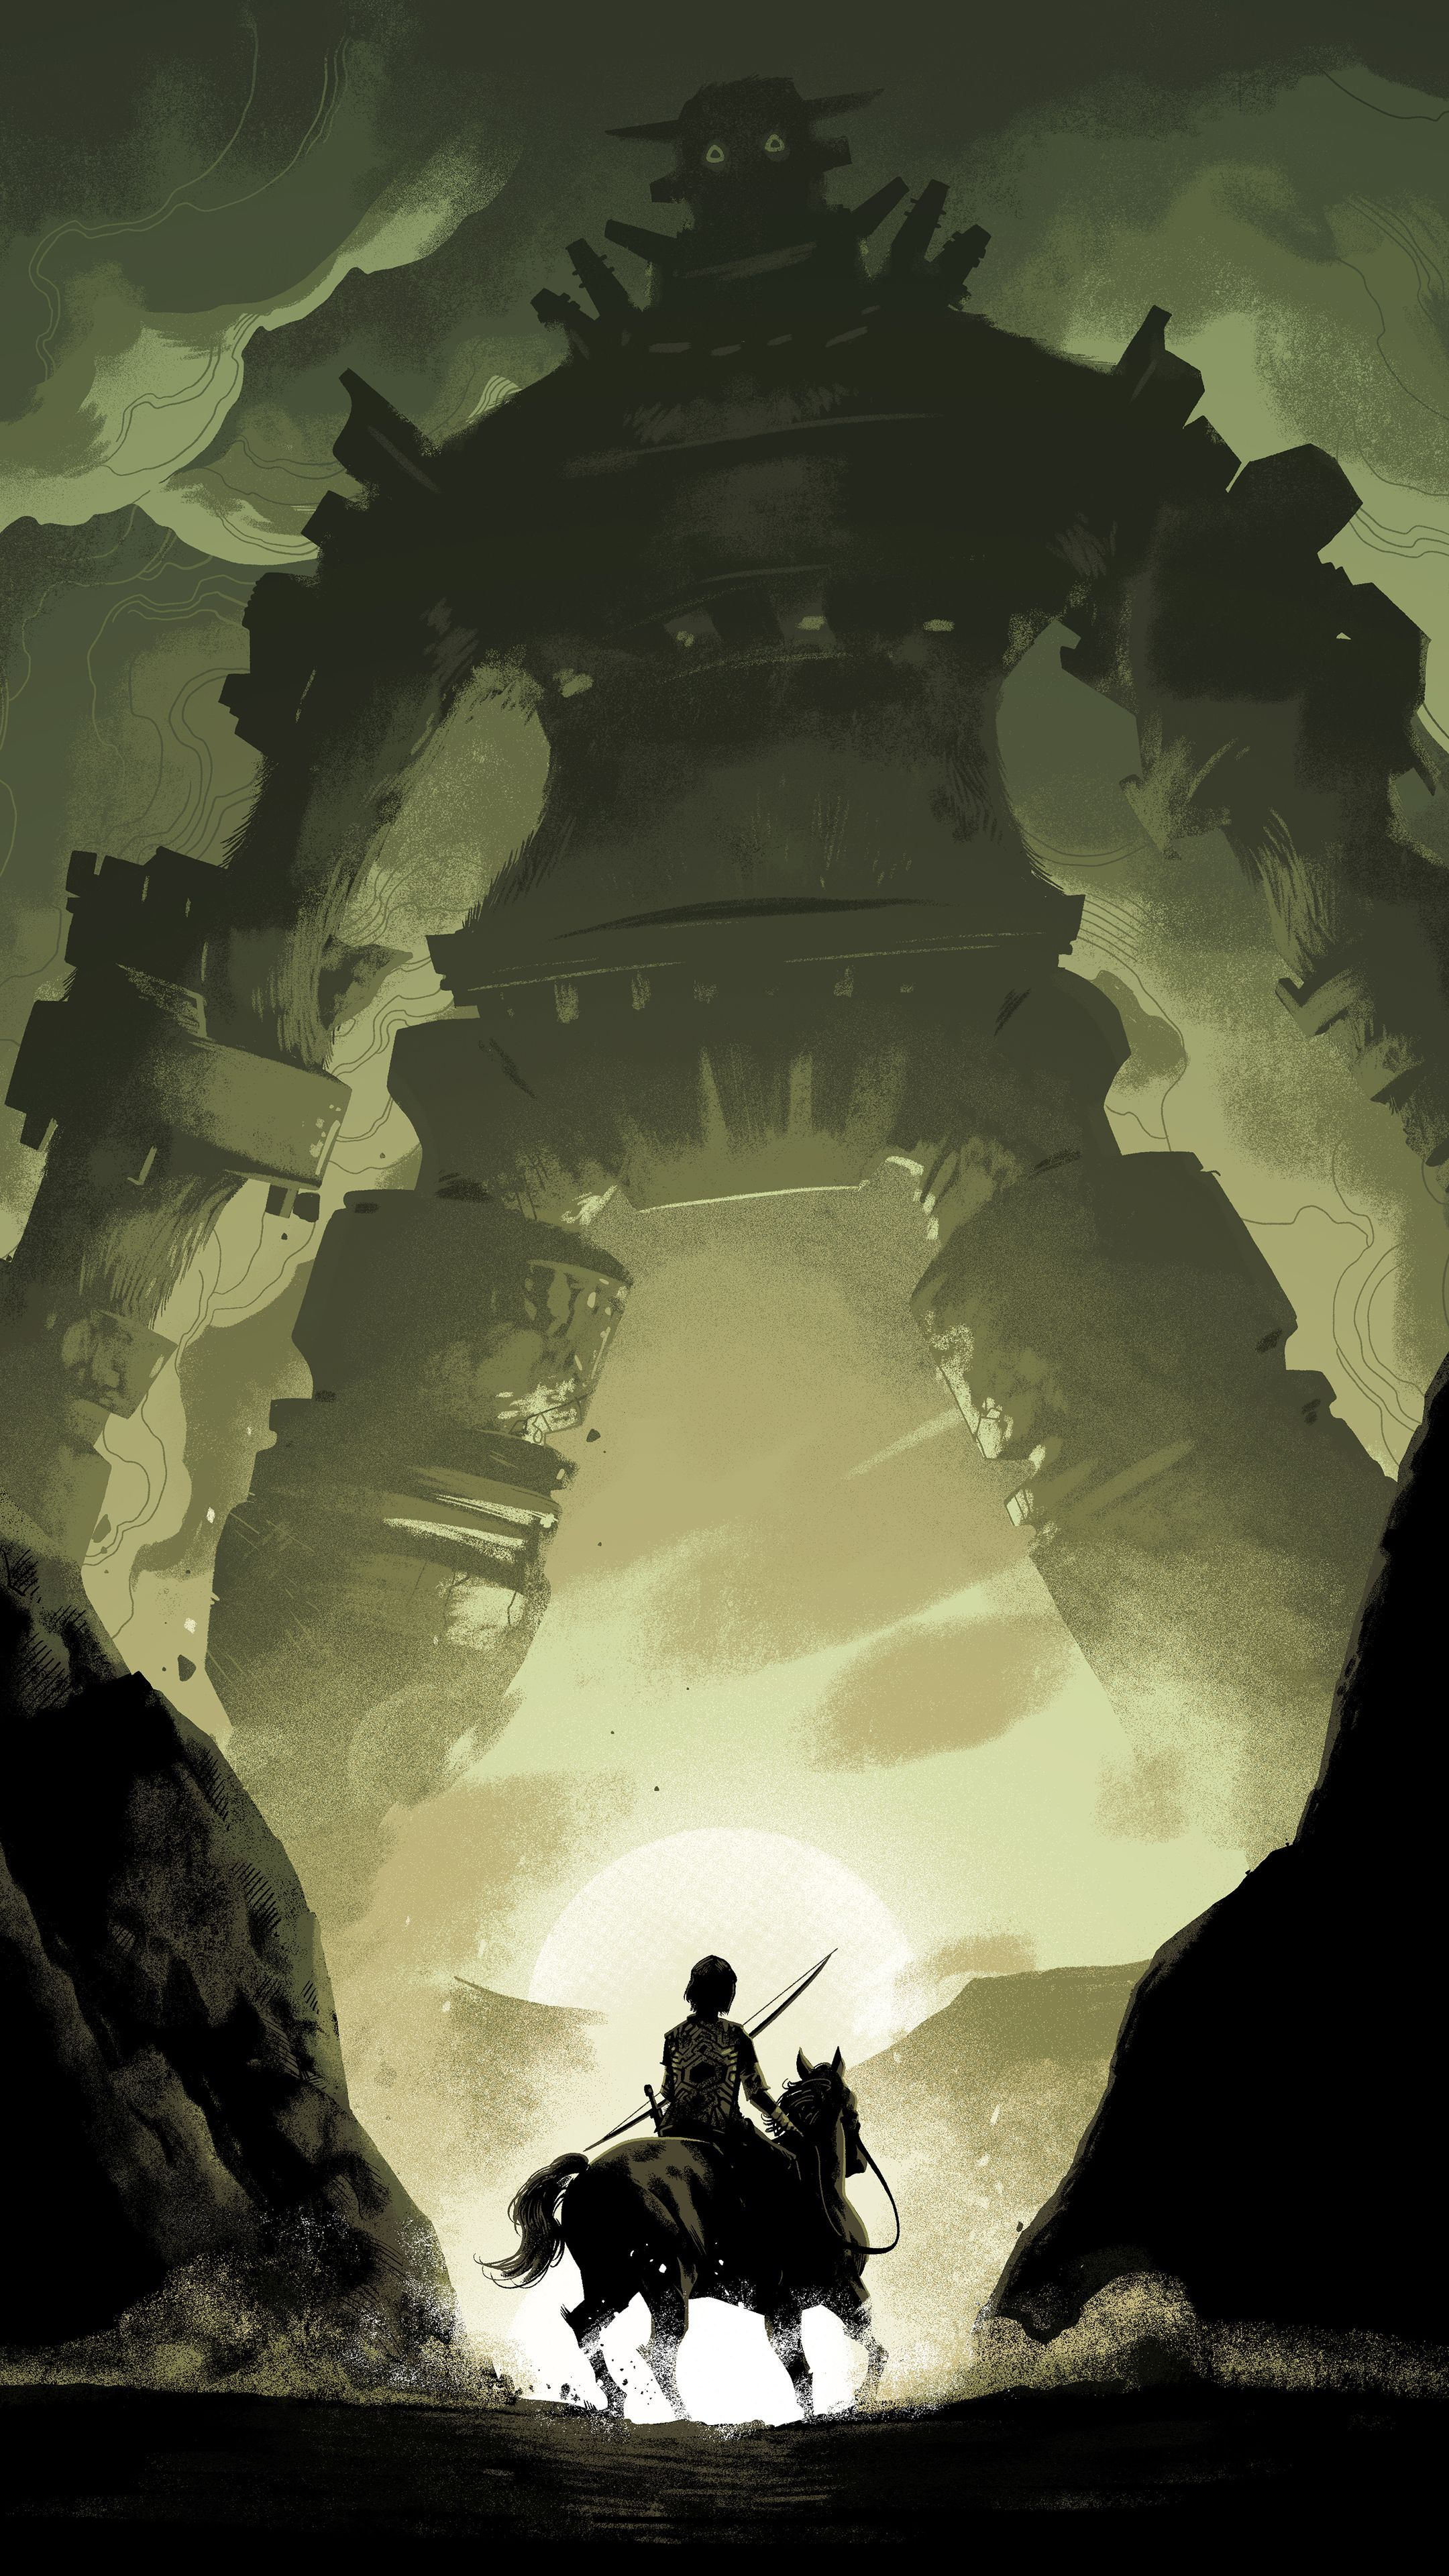 Colossus iphone wallpapers top free colossus iphone - Shadow of the colossus iphone wallpaper ...